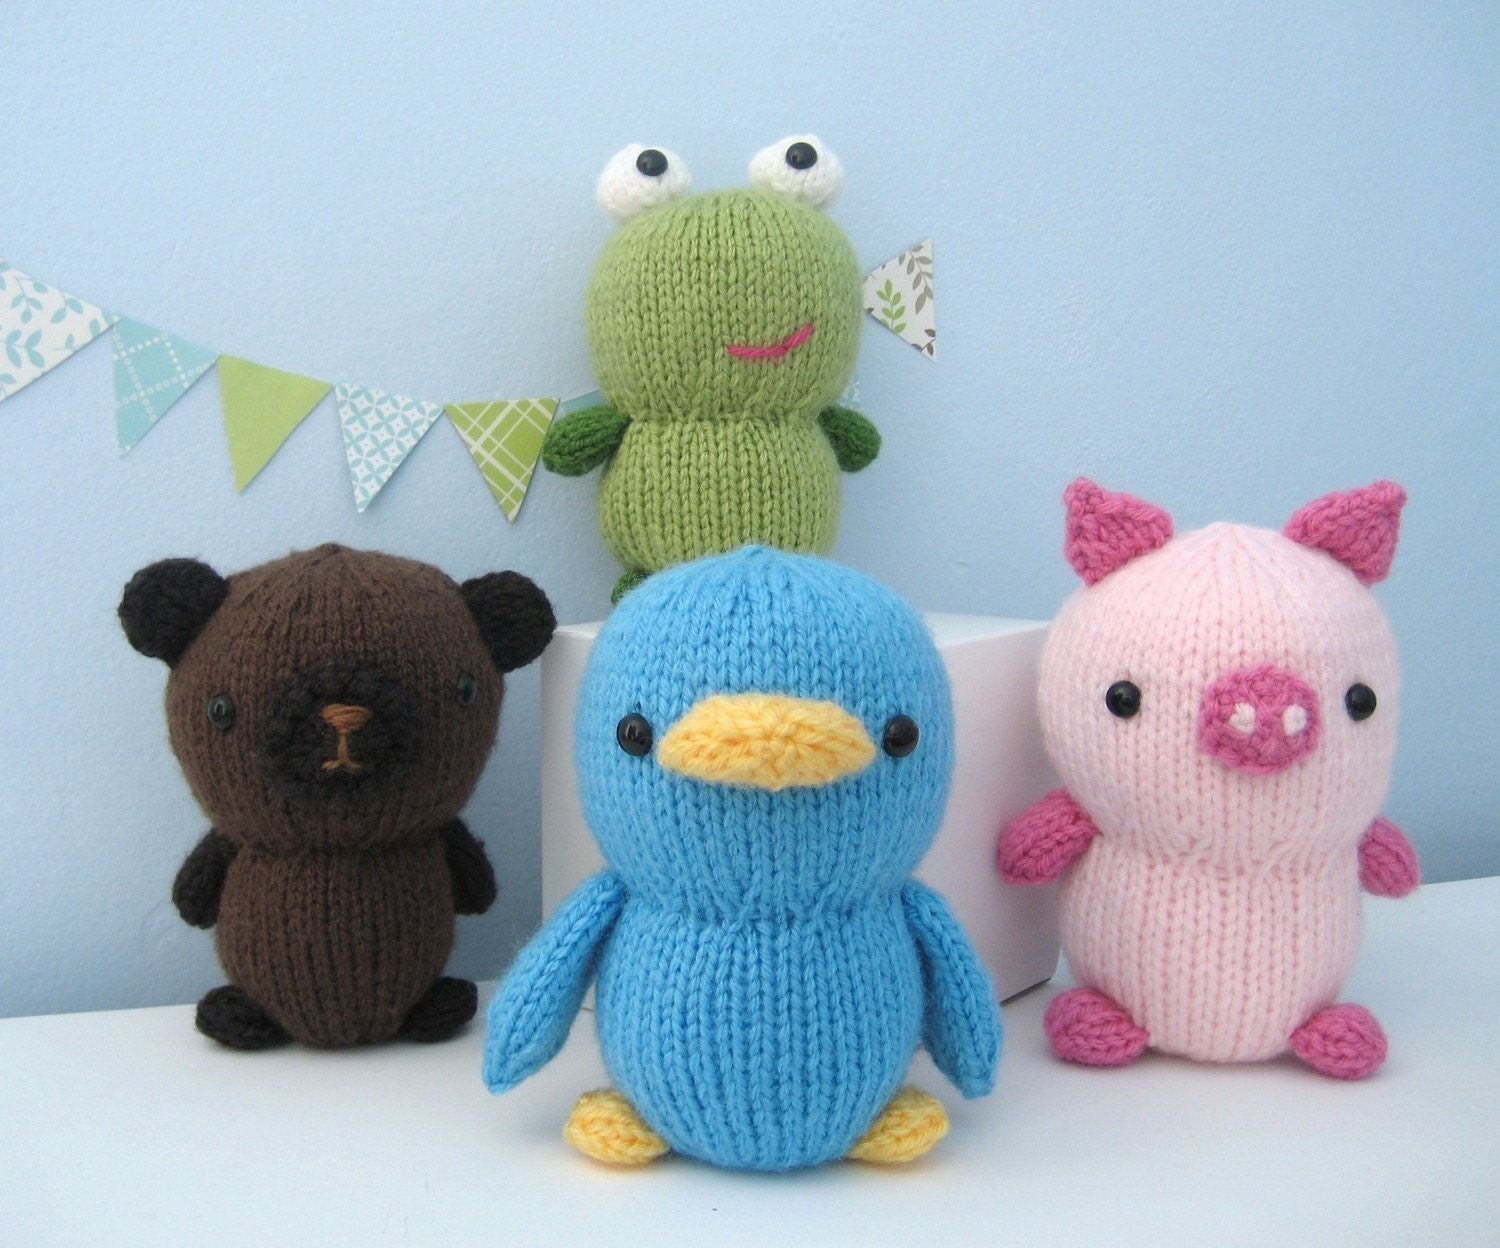 Free Knit Amigurumi Patterns : knitted amigurumi patterns Gallery